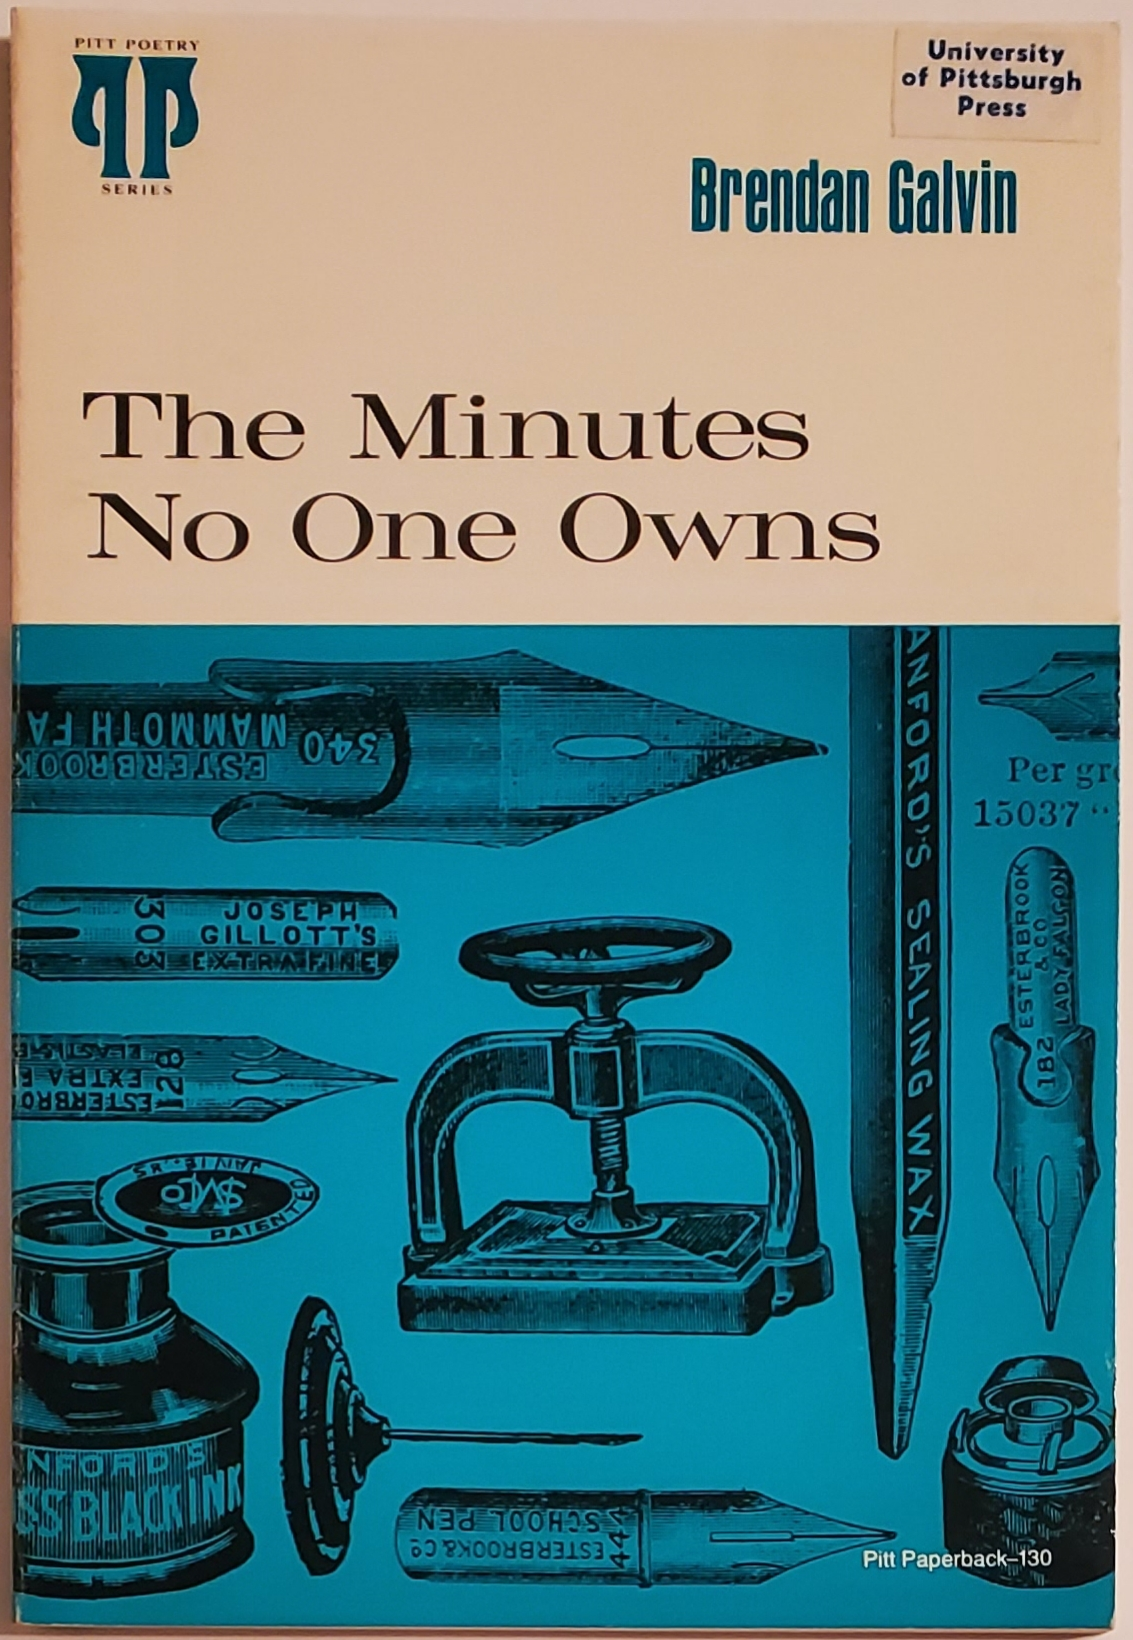 THE MINUTES NO ONE OWNS. Brendan Galvin.